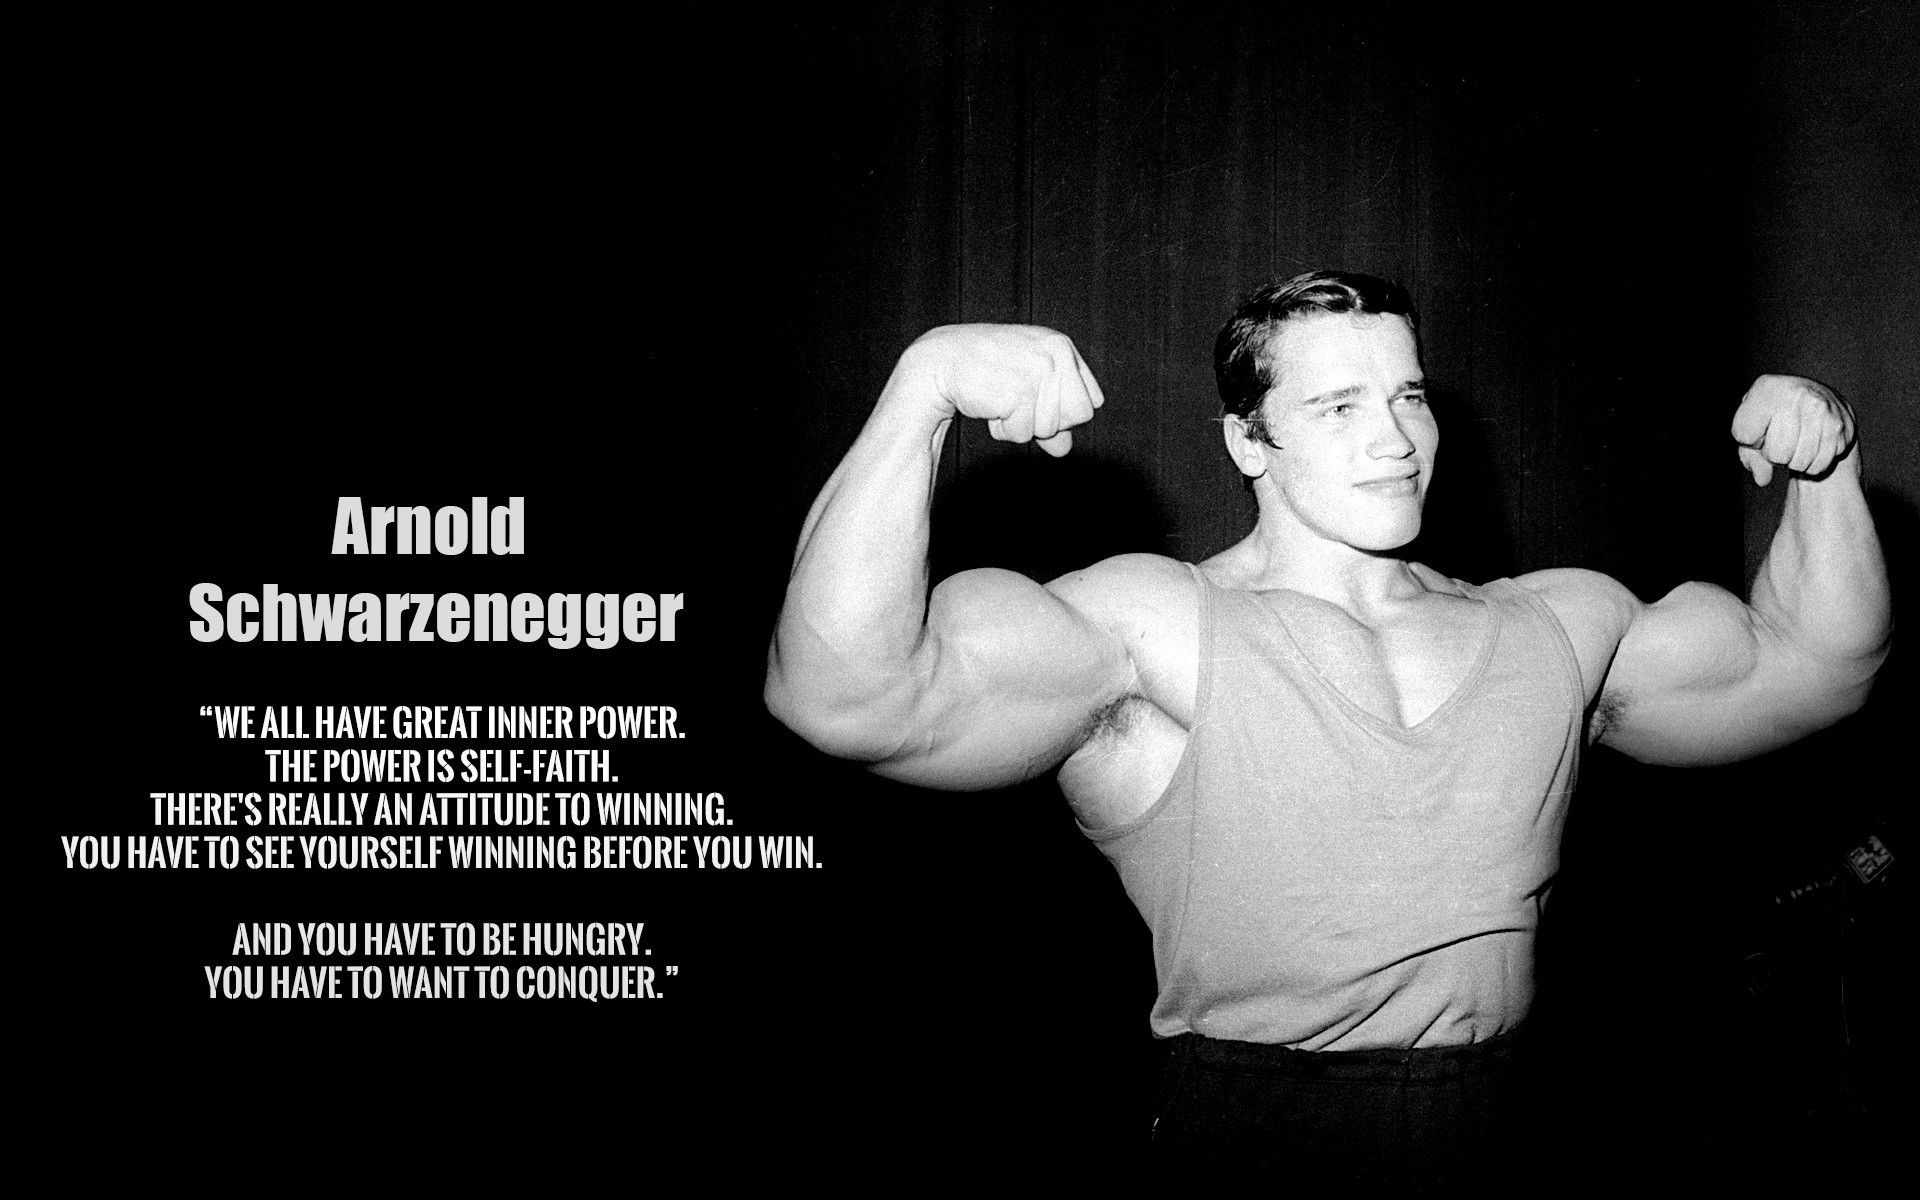 Arnold Schwarzenegger Wallpaper | Best Cool Wallpaper HD Download ...  Fabric PostersPoster PrintsBodybuilding QuotesGym ...